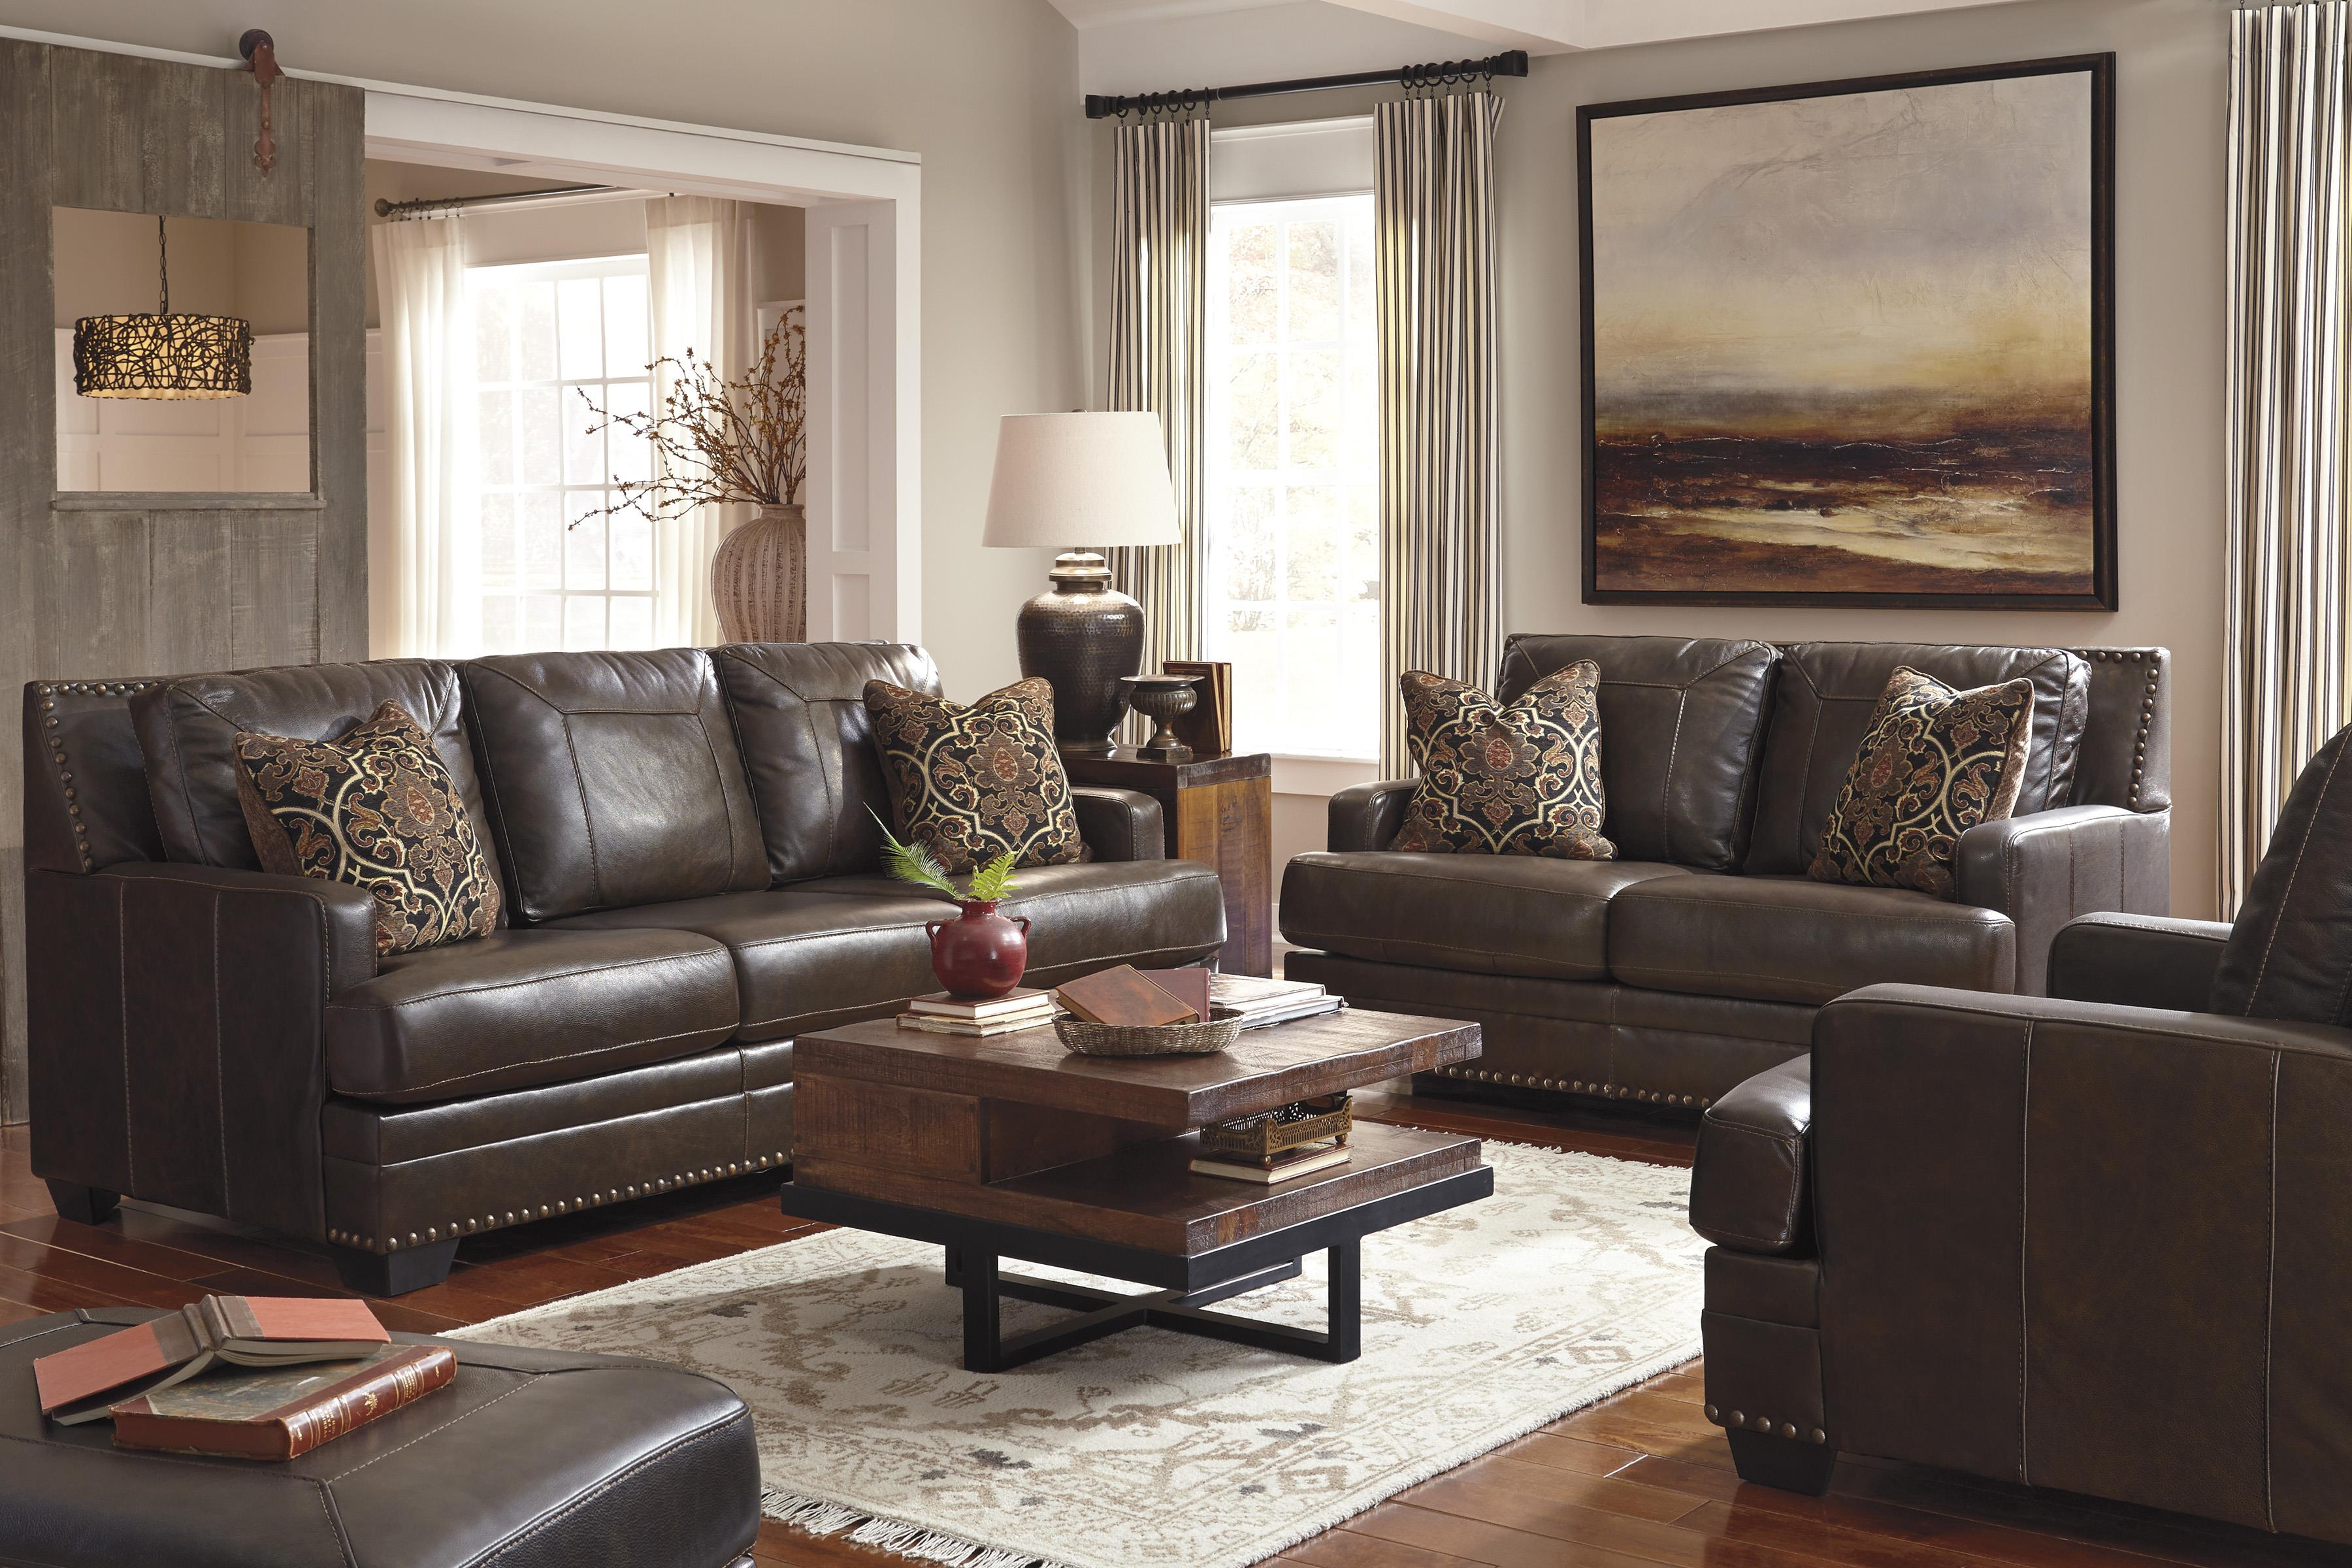 Accent Chairs To Go With Brown Leather Sofa Corvan Leather Match Chair With Coil Seat Cushion Ottoman By Signature Design By Ashley At L Fish